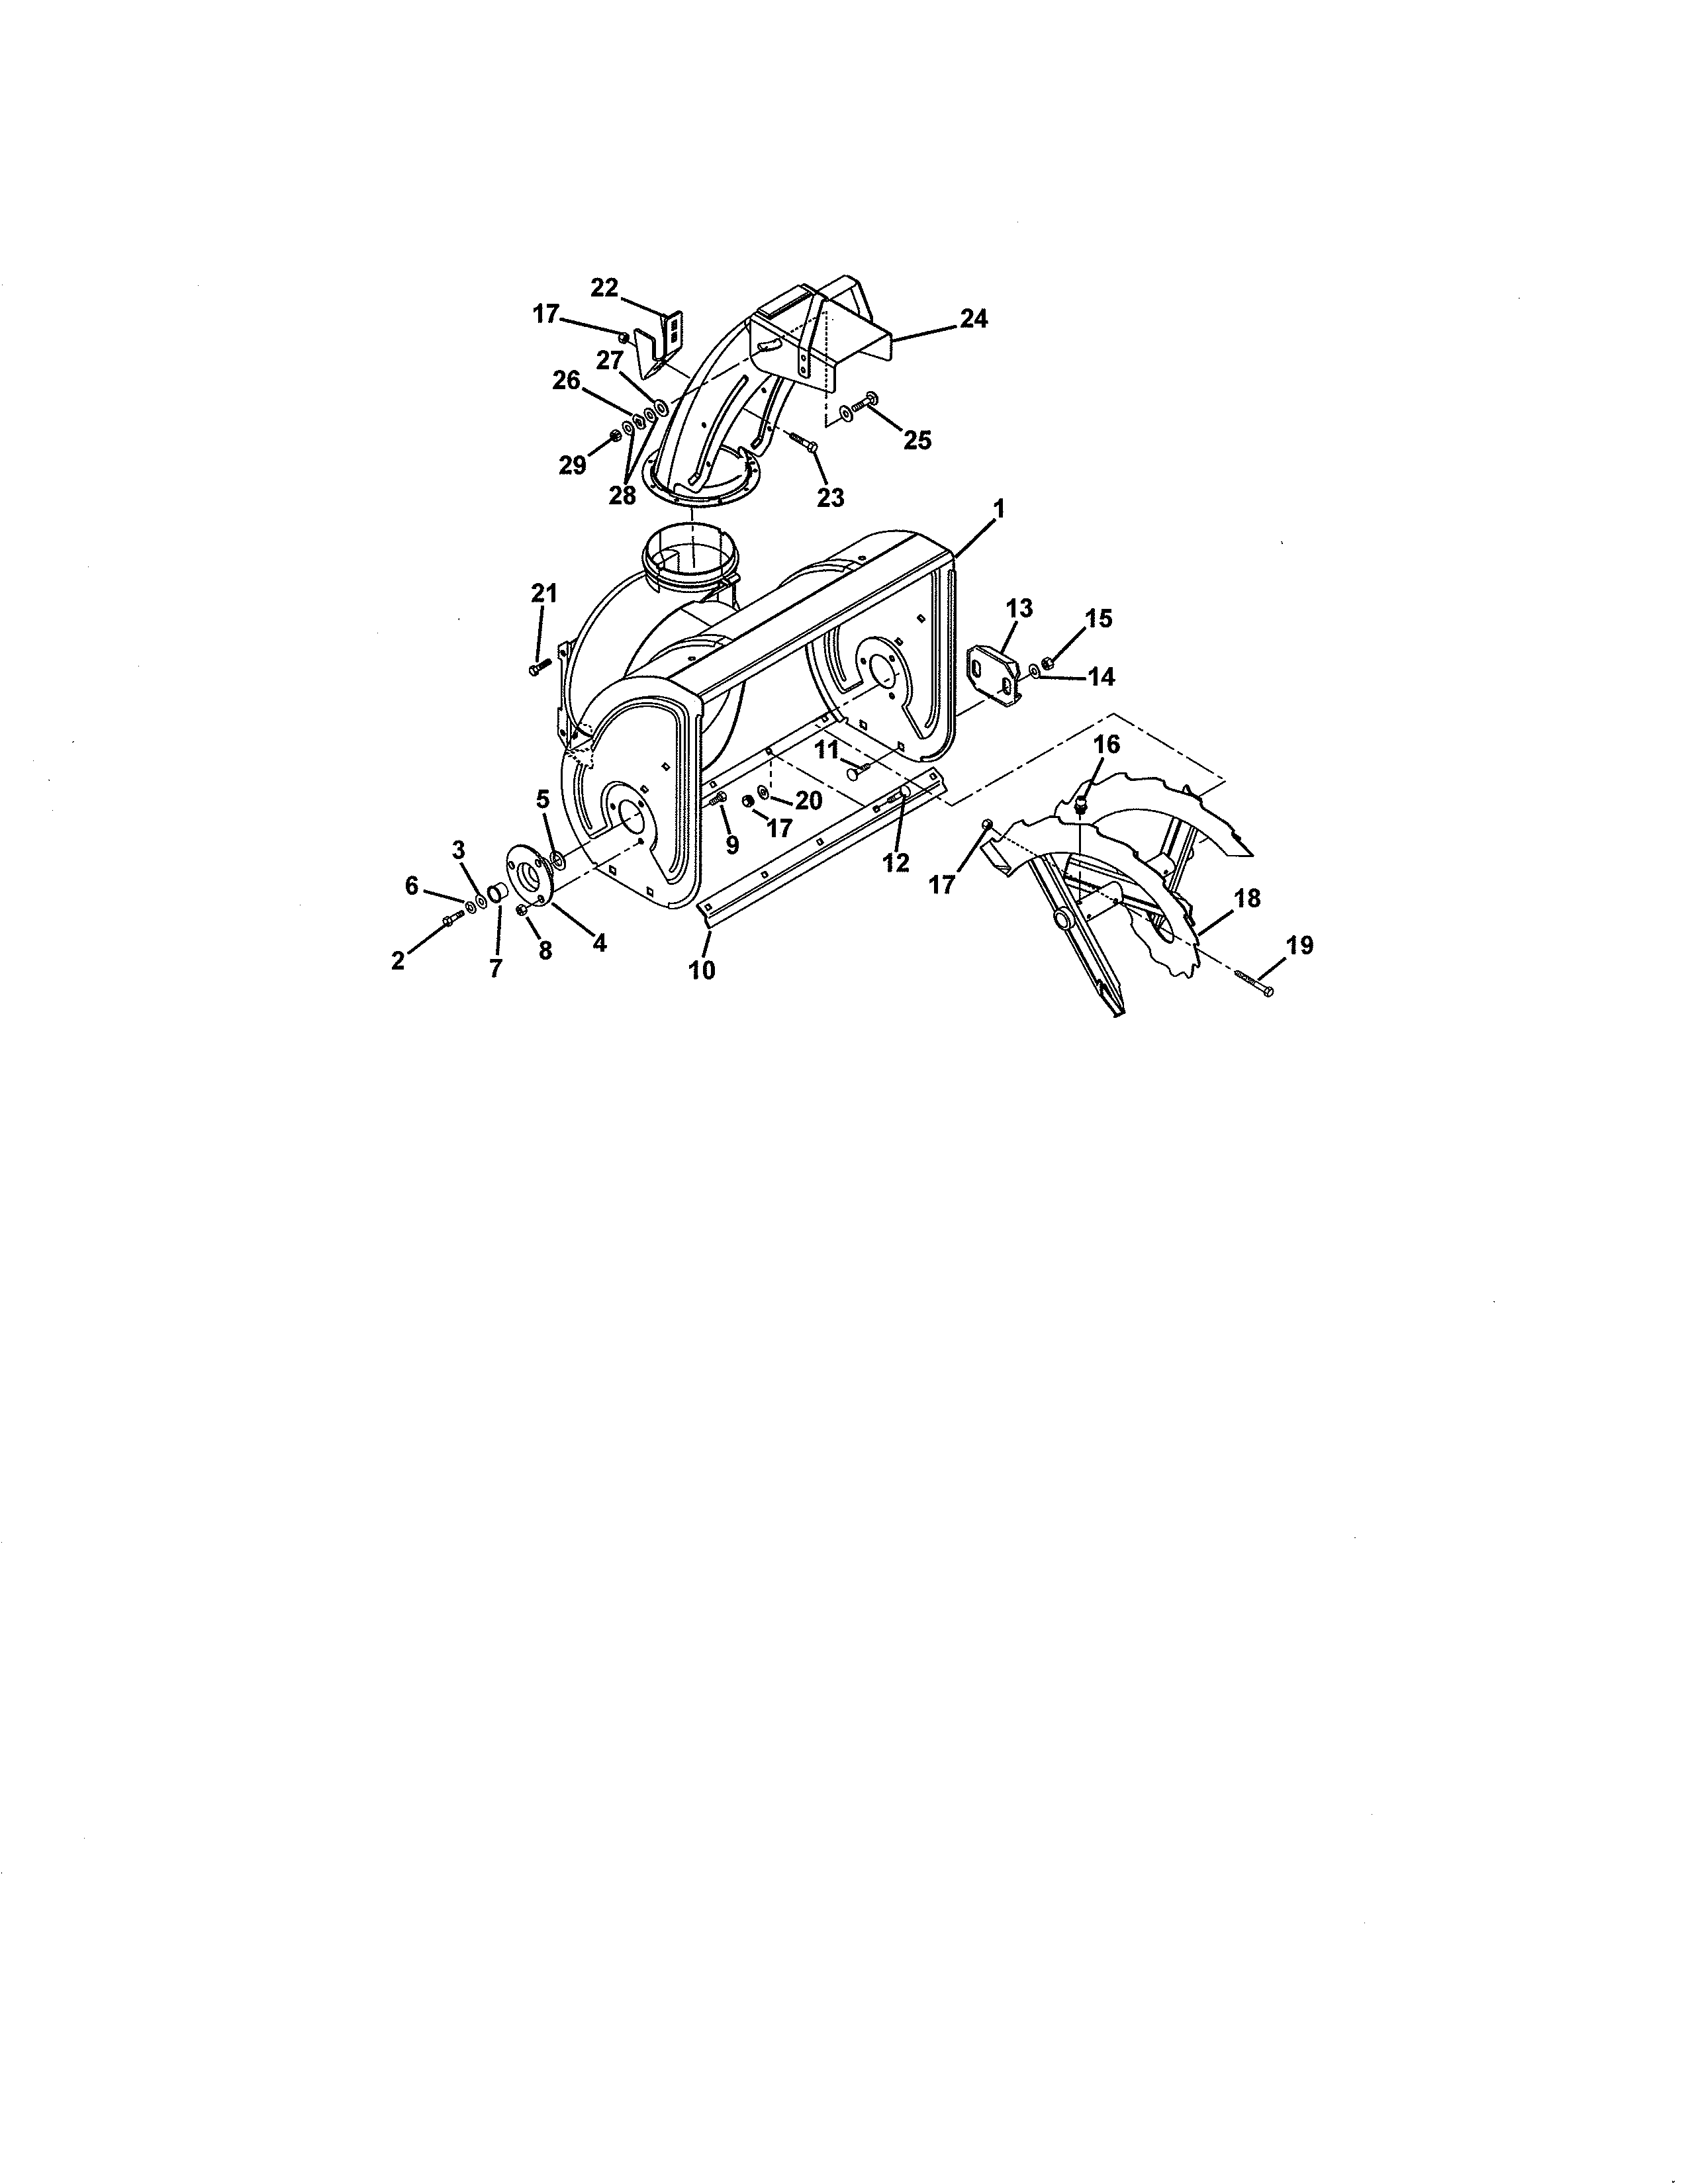 Ariens 93250500 (101-1500) auger and chute diagram